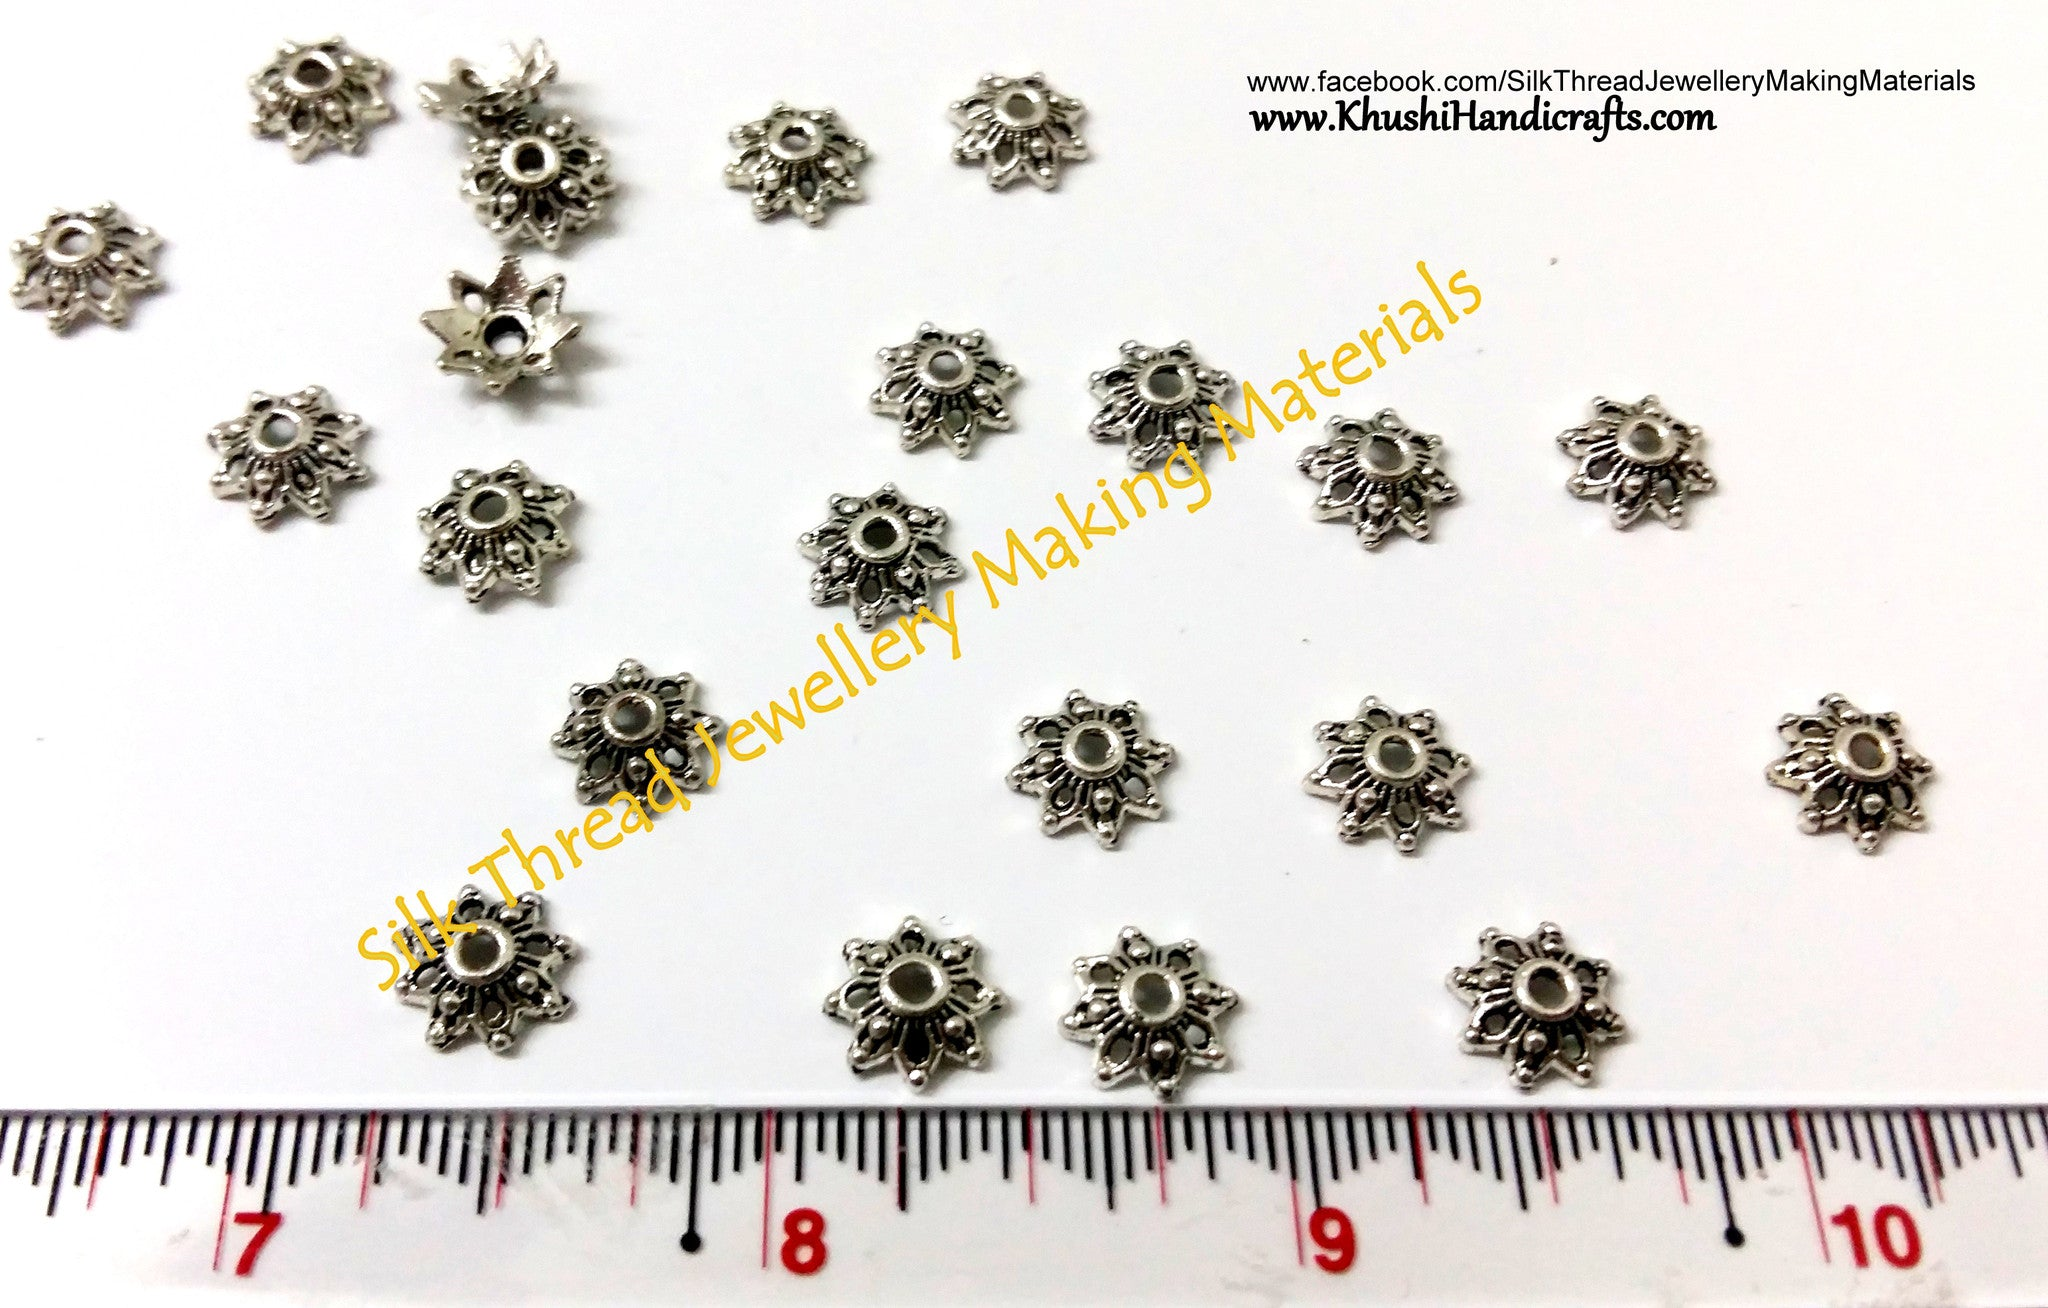 Antique Silver Bead Cap Flower pattern 2 - Khushi Handmade Jewellery